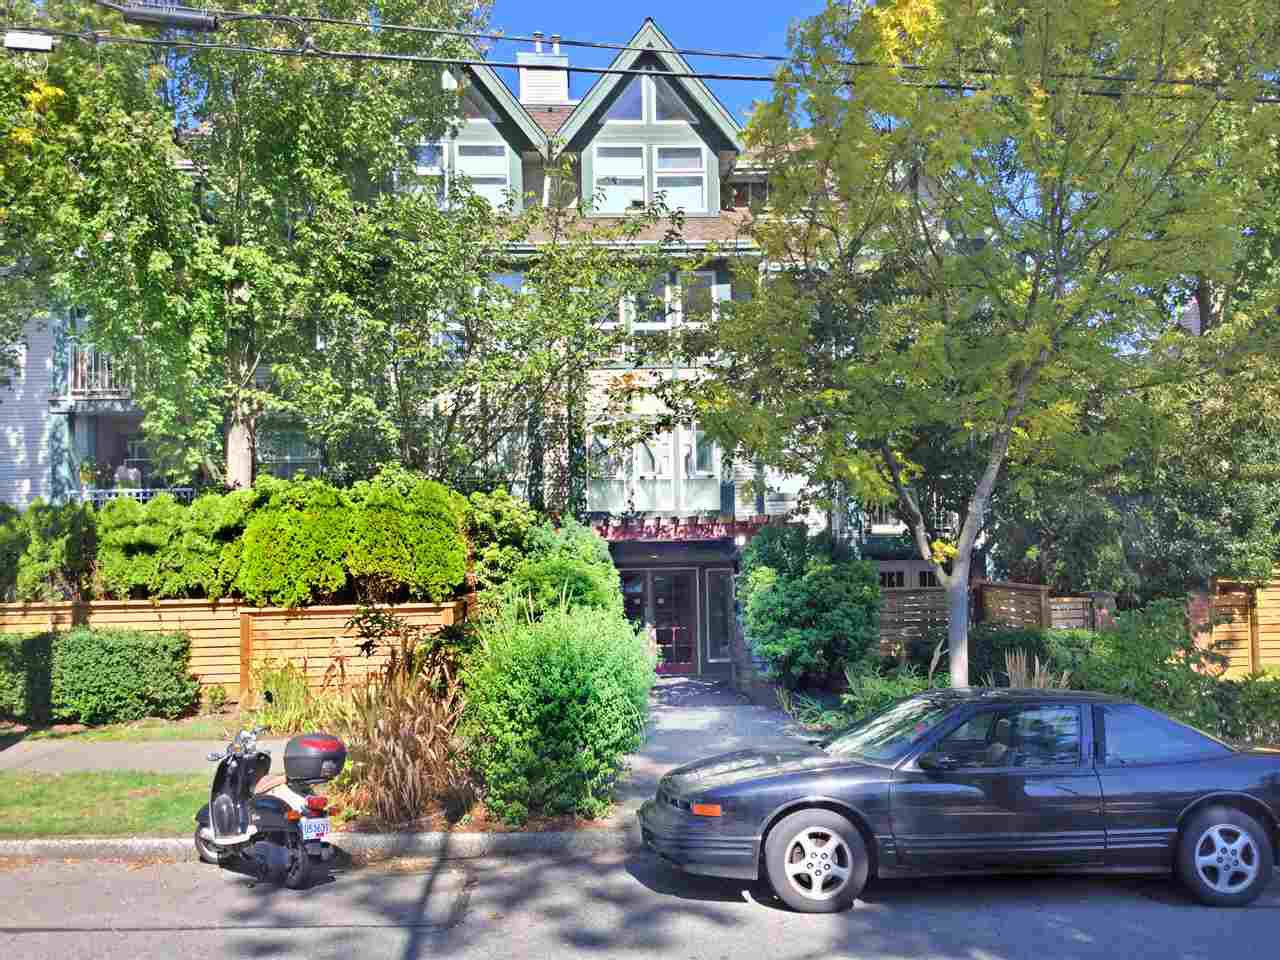 """Main Photo: 202 1915 E GEORGIA Street in Vancouver: Hastings Condo for sale in """"GEORGIA GARDENS"""" (Vancouver East)  : MLS®# R2000271"""